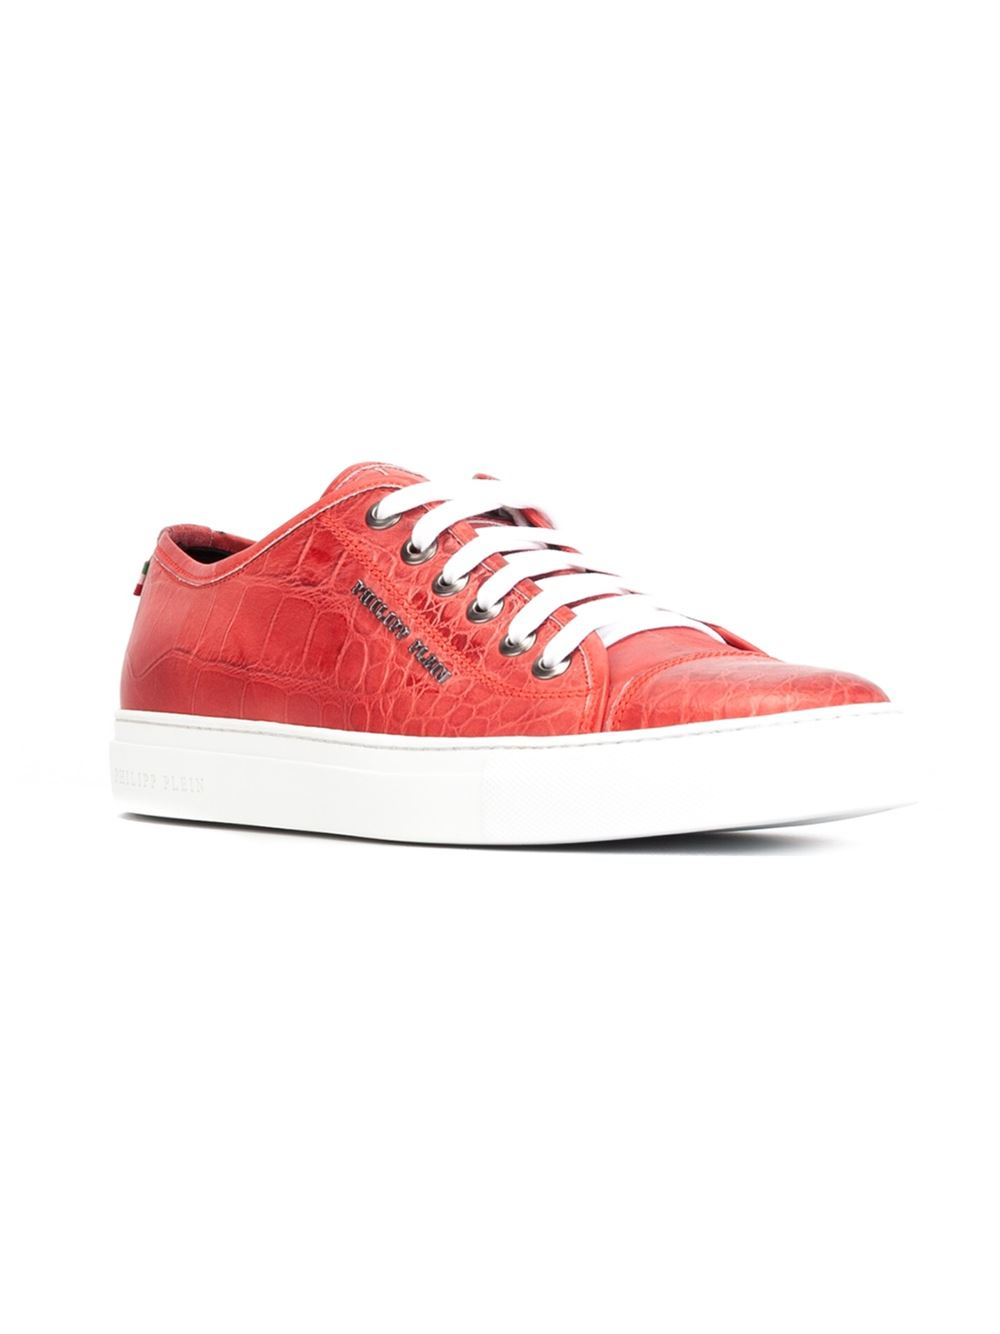 Philipp plein Believe Leather Low-Top Sneakers in Red for ...